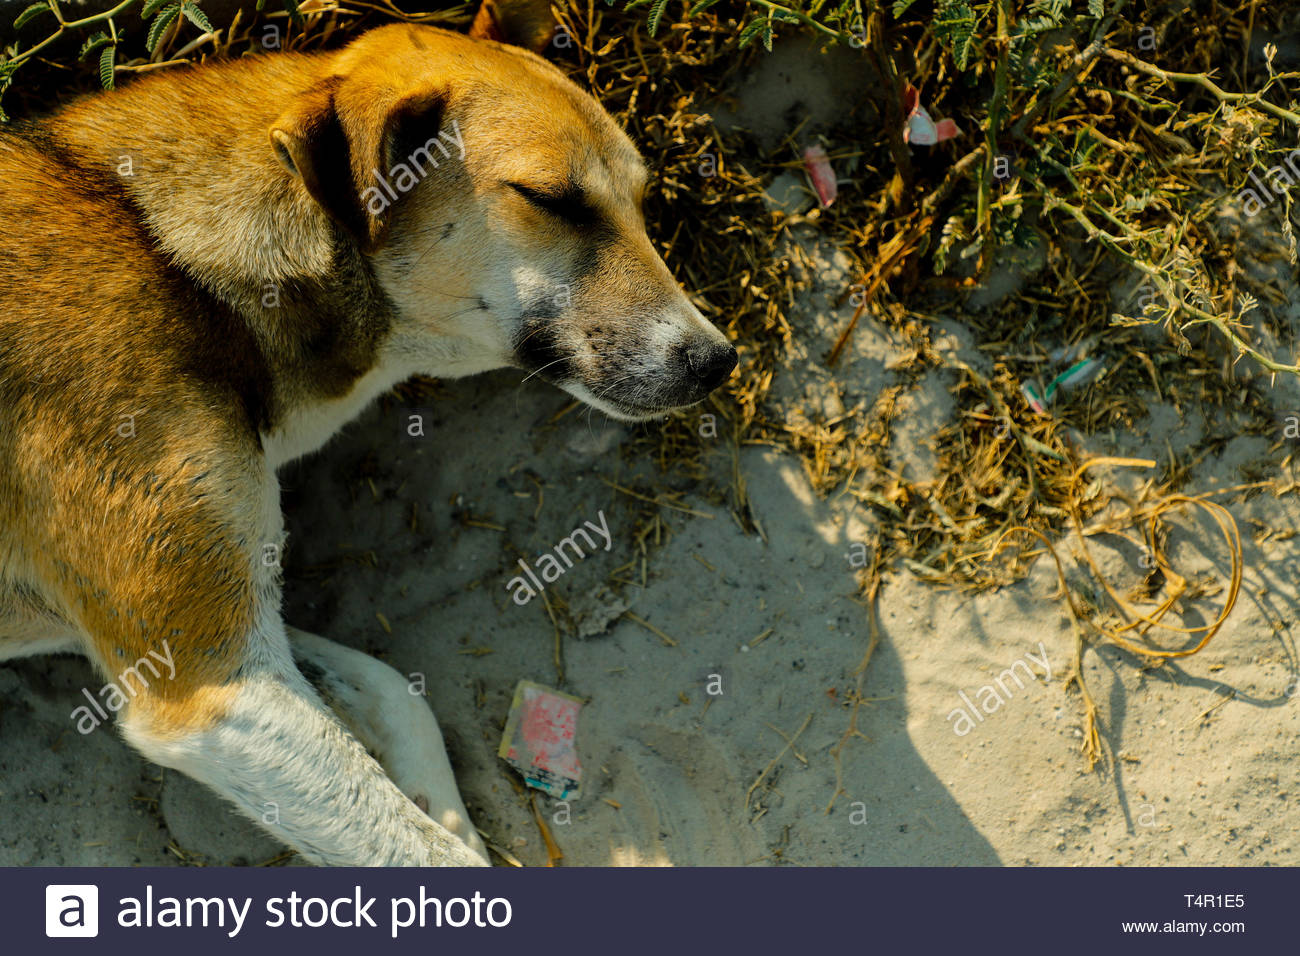 brown short coated dog lying on grass - Stock Image